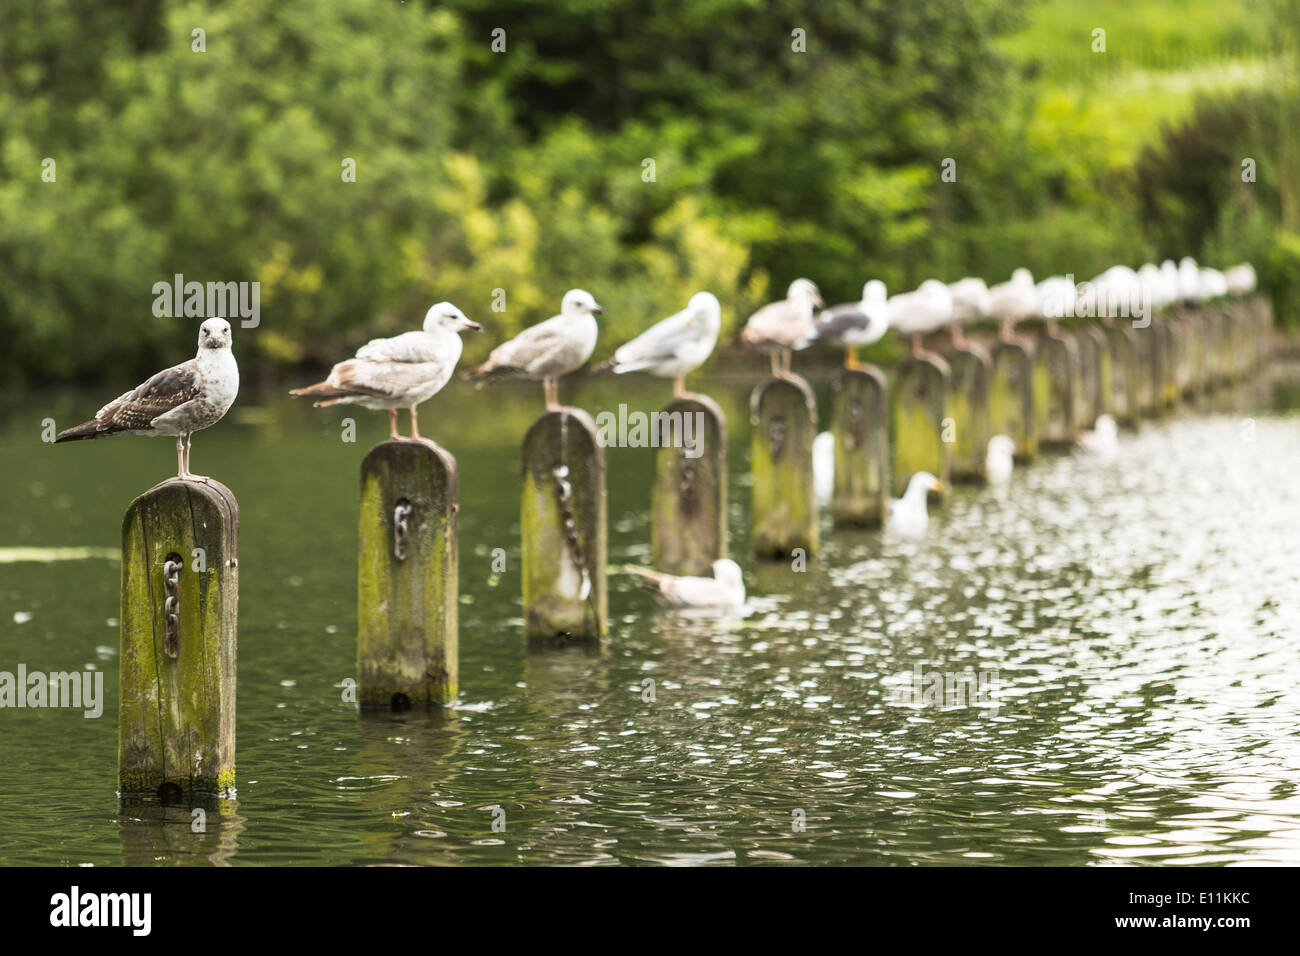 London, UK. 21st May, 2014. Common gulls on a row in Hyde Park, London, UK on Wednesday, 21 May 2014 Credit:  Cecilia Colussi/Alamy Live News - Stock Image